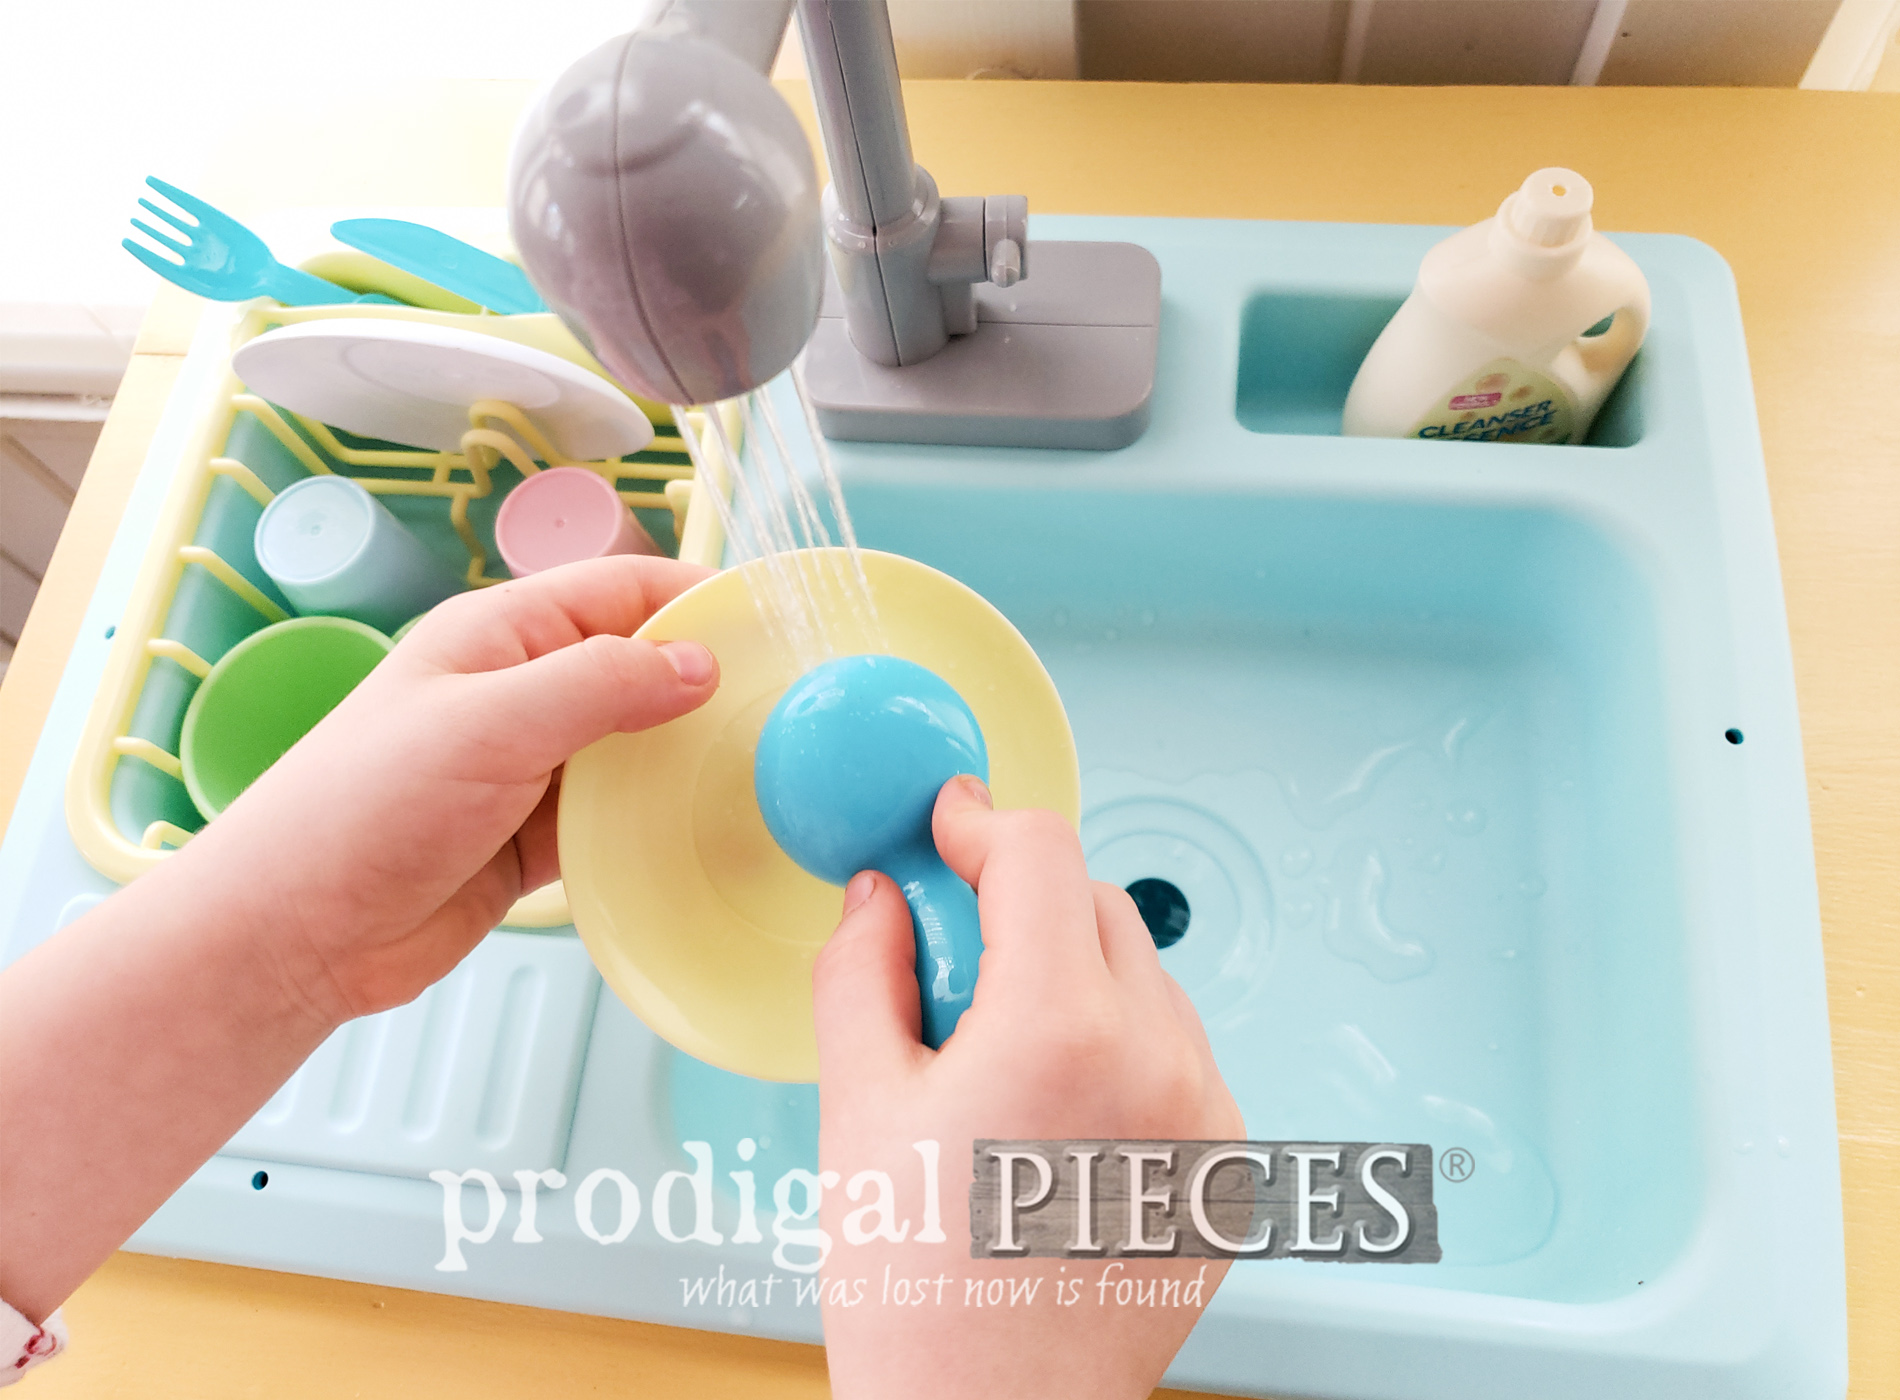 Featured Upcycled Play Kitchen with Working Sink by Larissa of Prodigal Pieces with Video Tutorial | prodigalpieces.com #prodigalpieces #kids #play #furniture #upcycle #home #homedecor